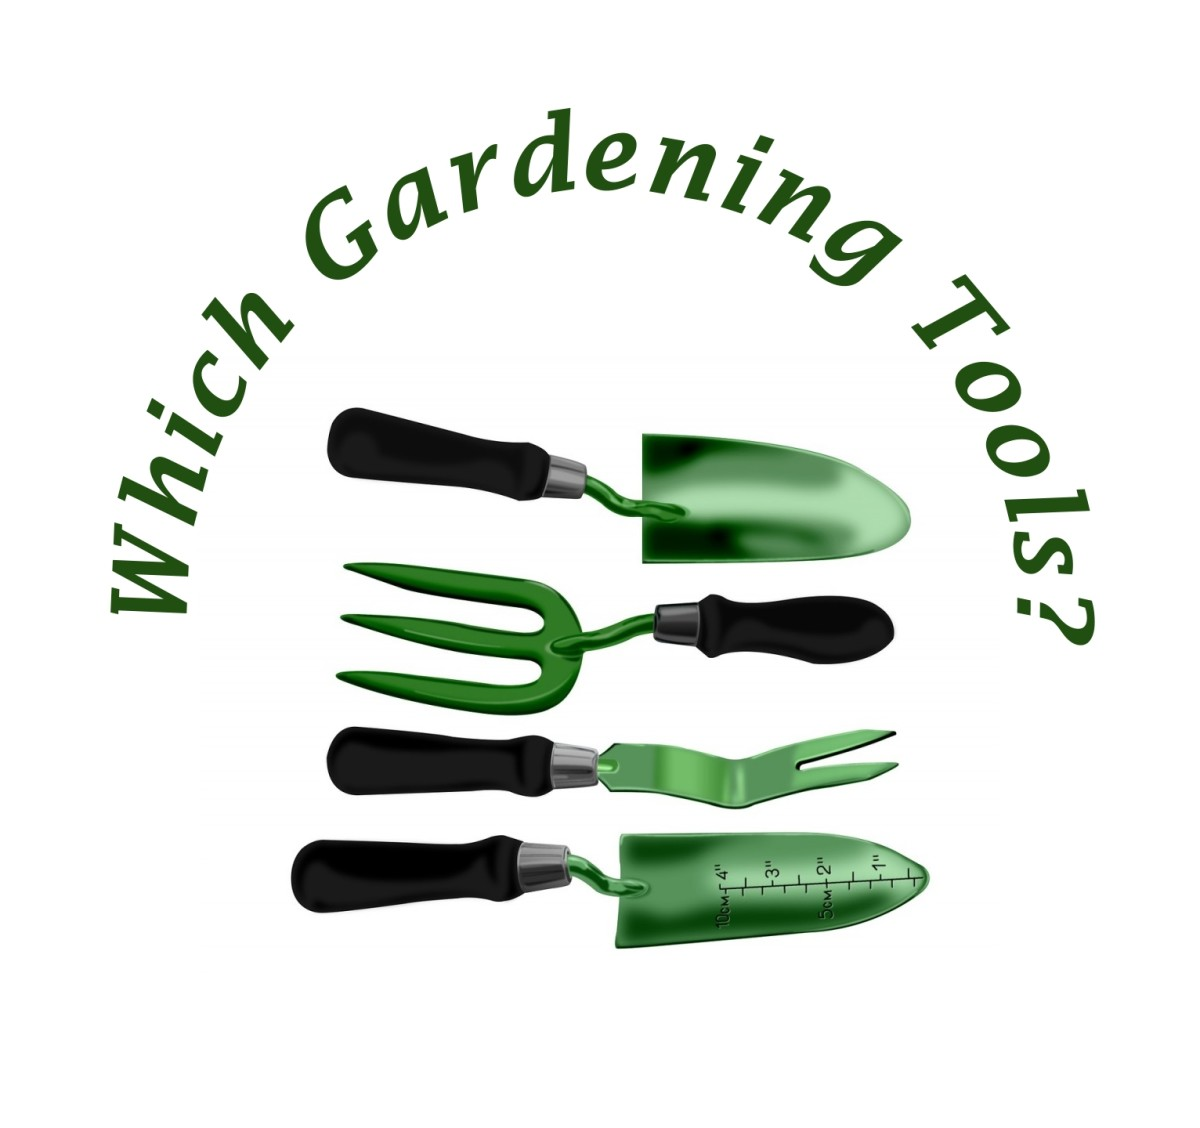 Gardening Tools Buying Guide for Dummies